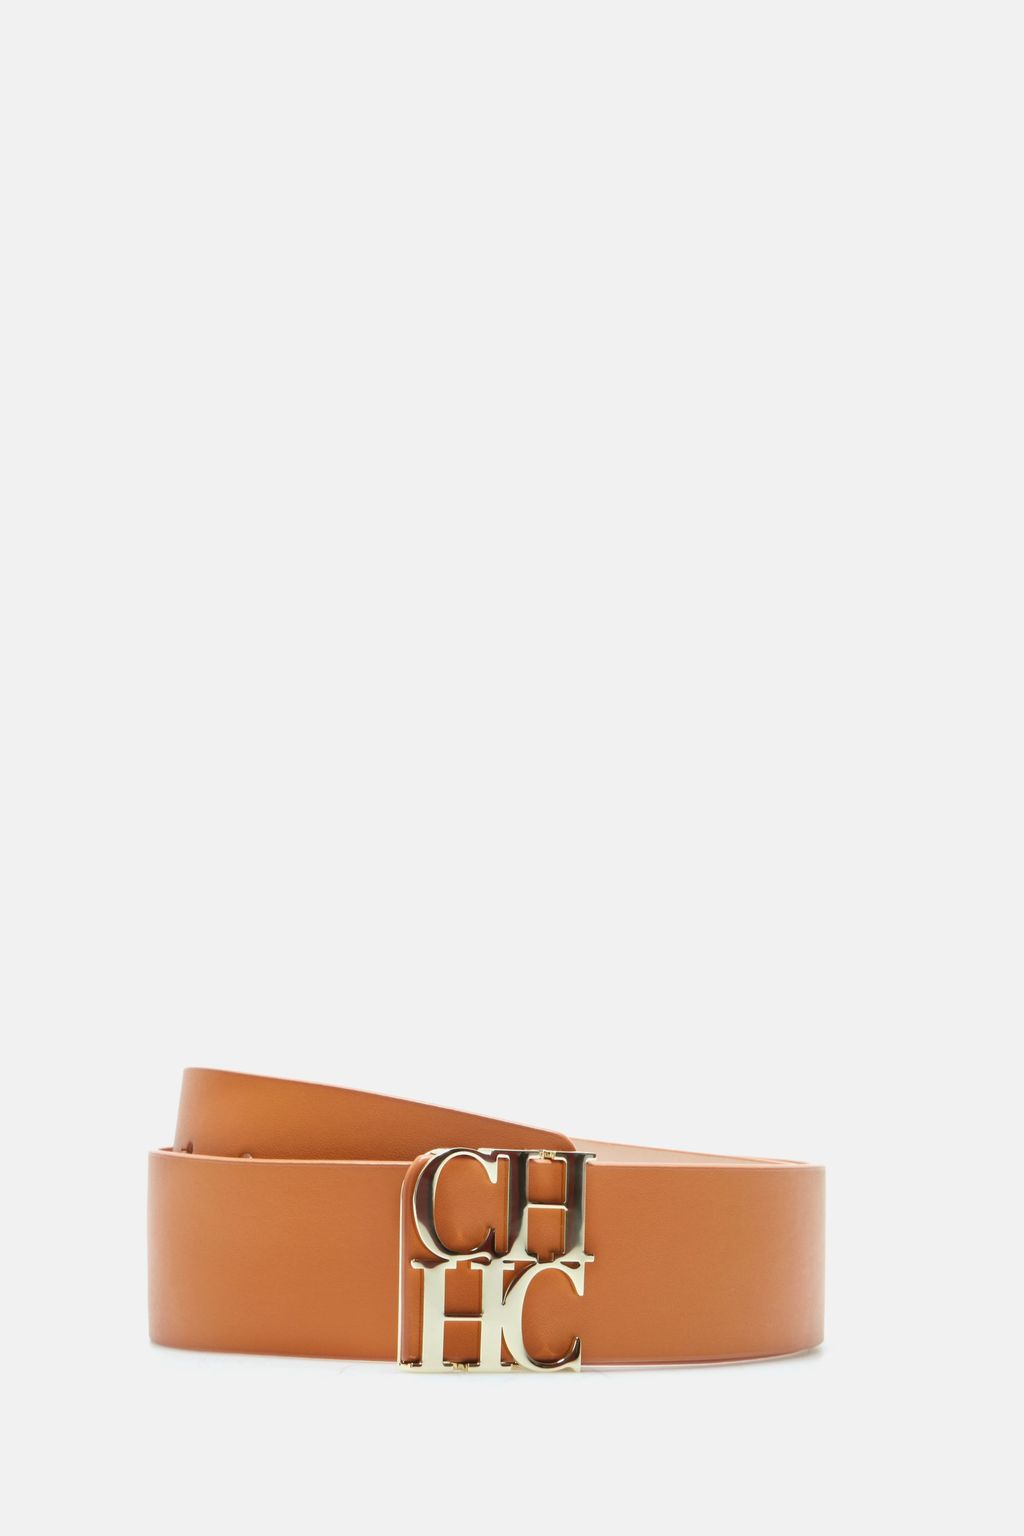 CHHC leather belt